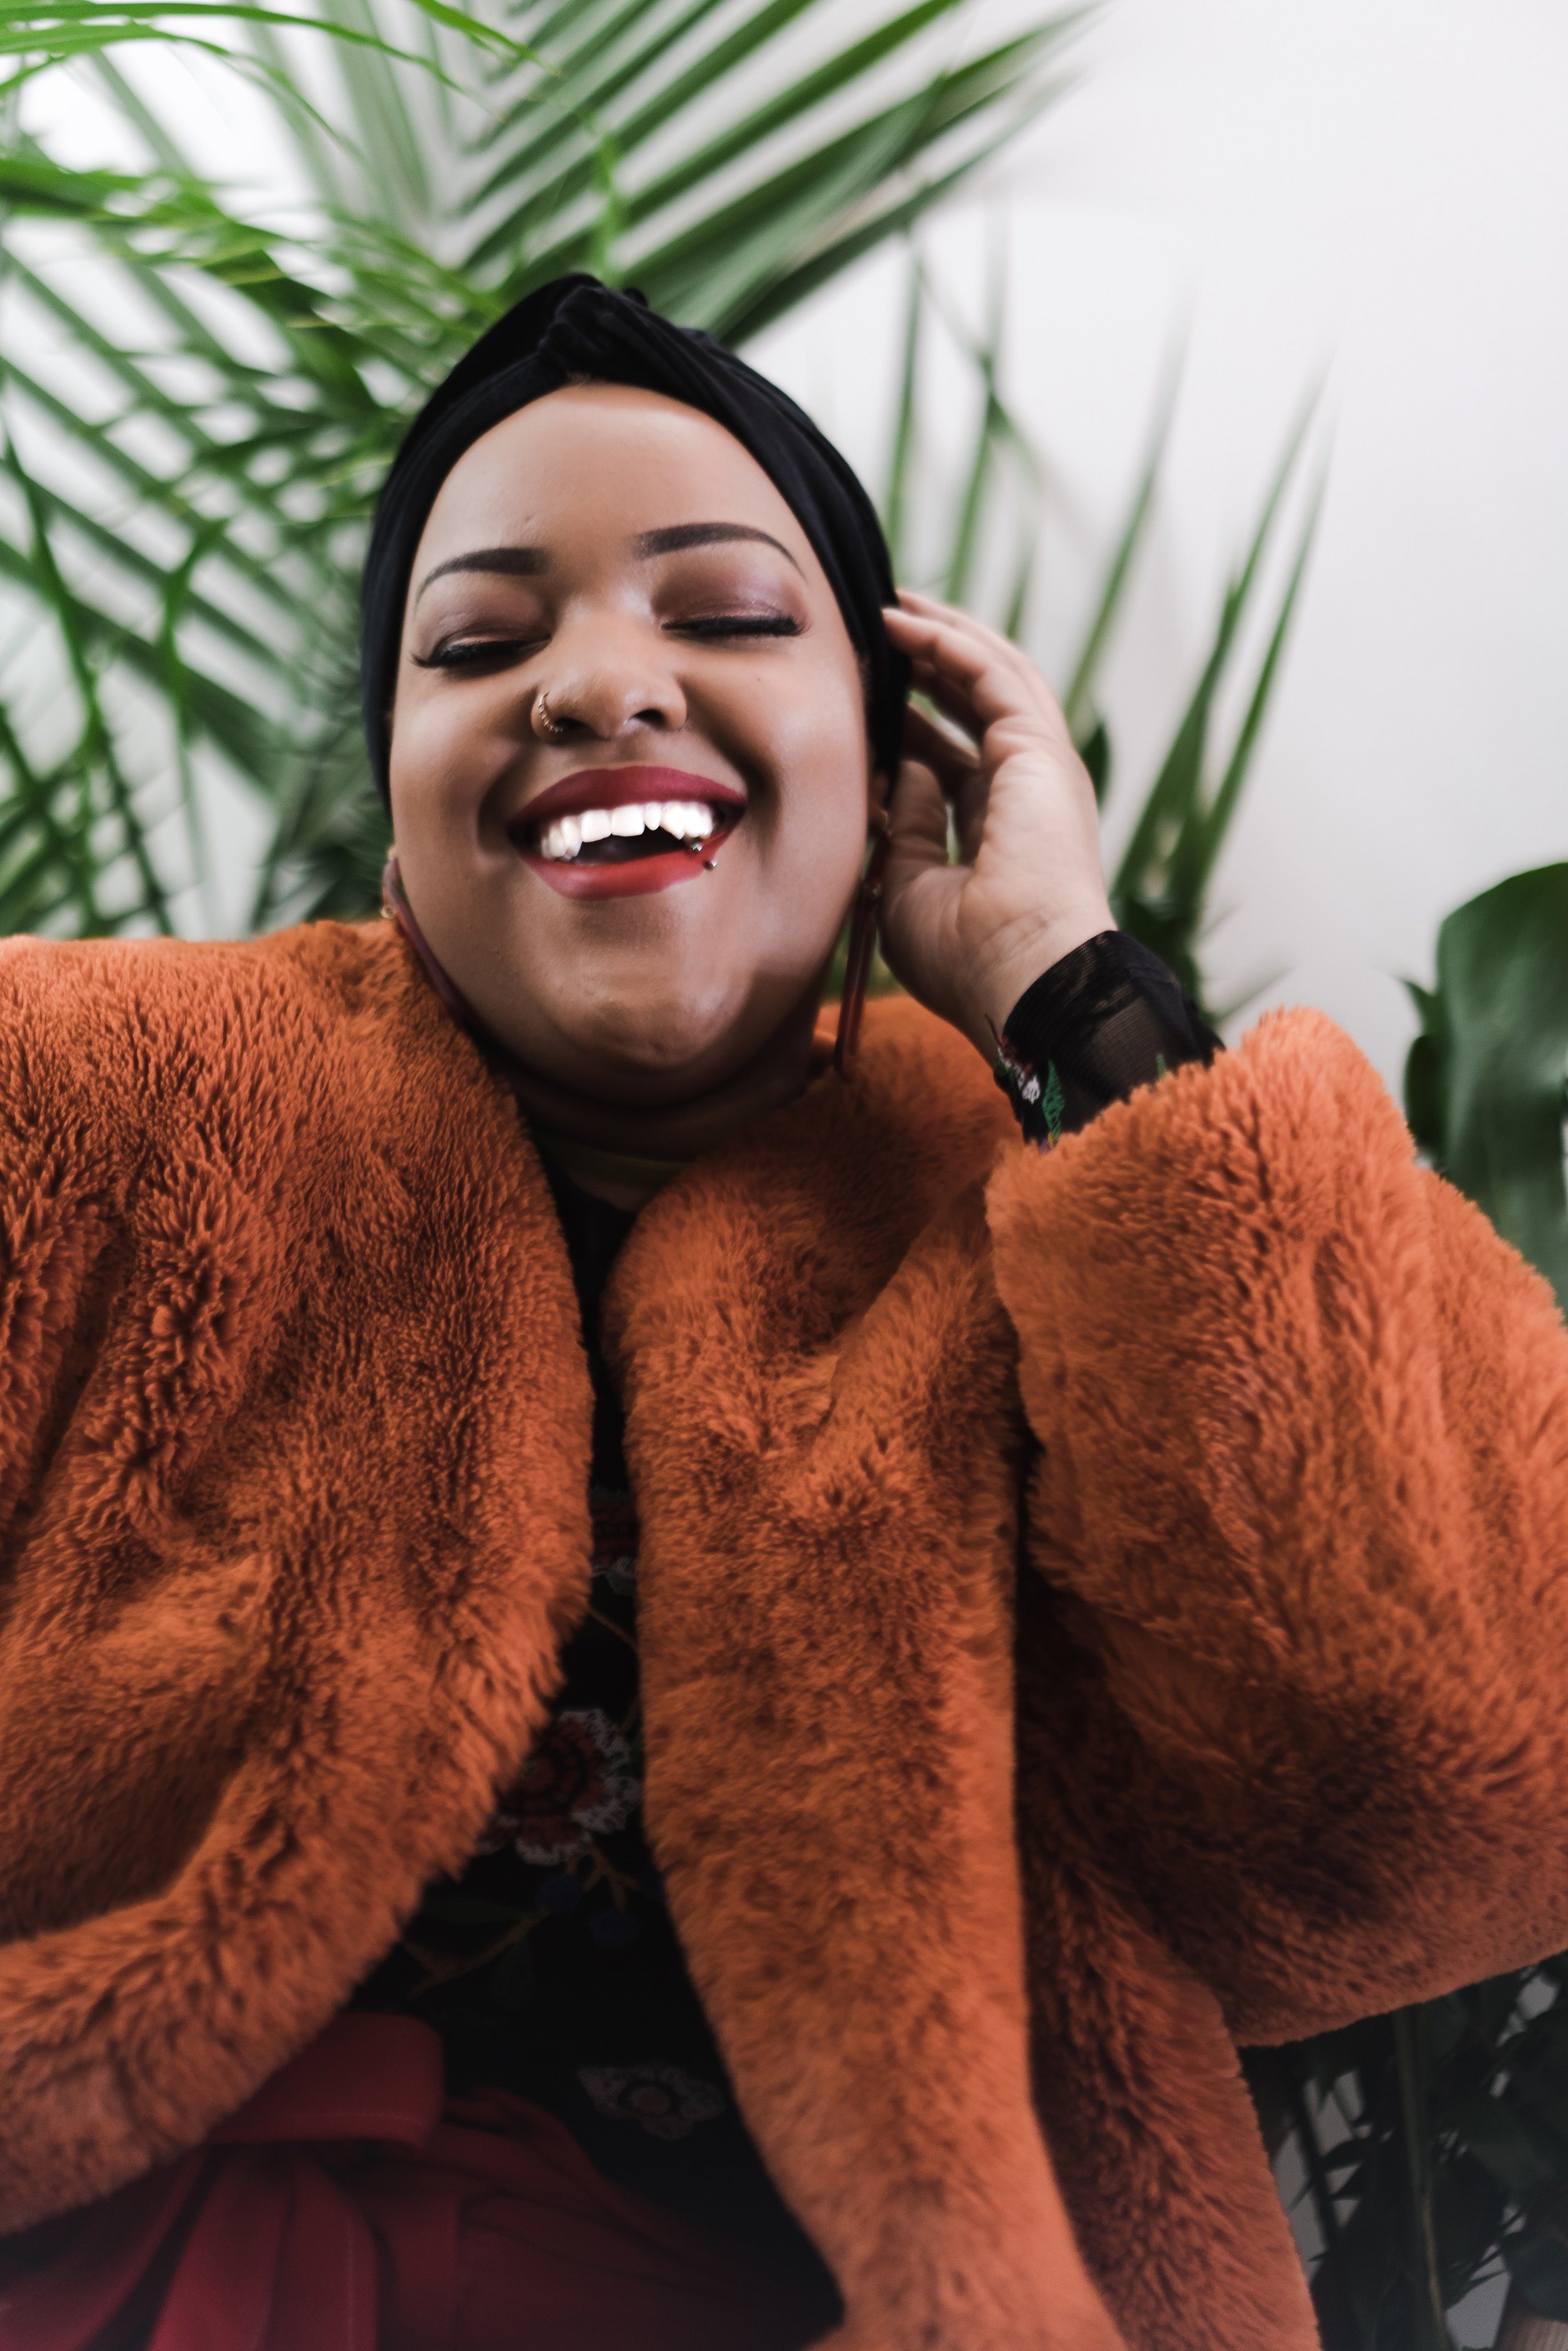 Leah-Vernon-New-York-Blogger-Plus-Size-Model-Body-Positive-Muslim-Girl-Hijabi-Style-Instagram-Influencer-2.jpg